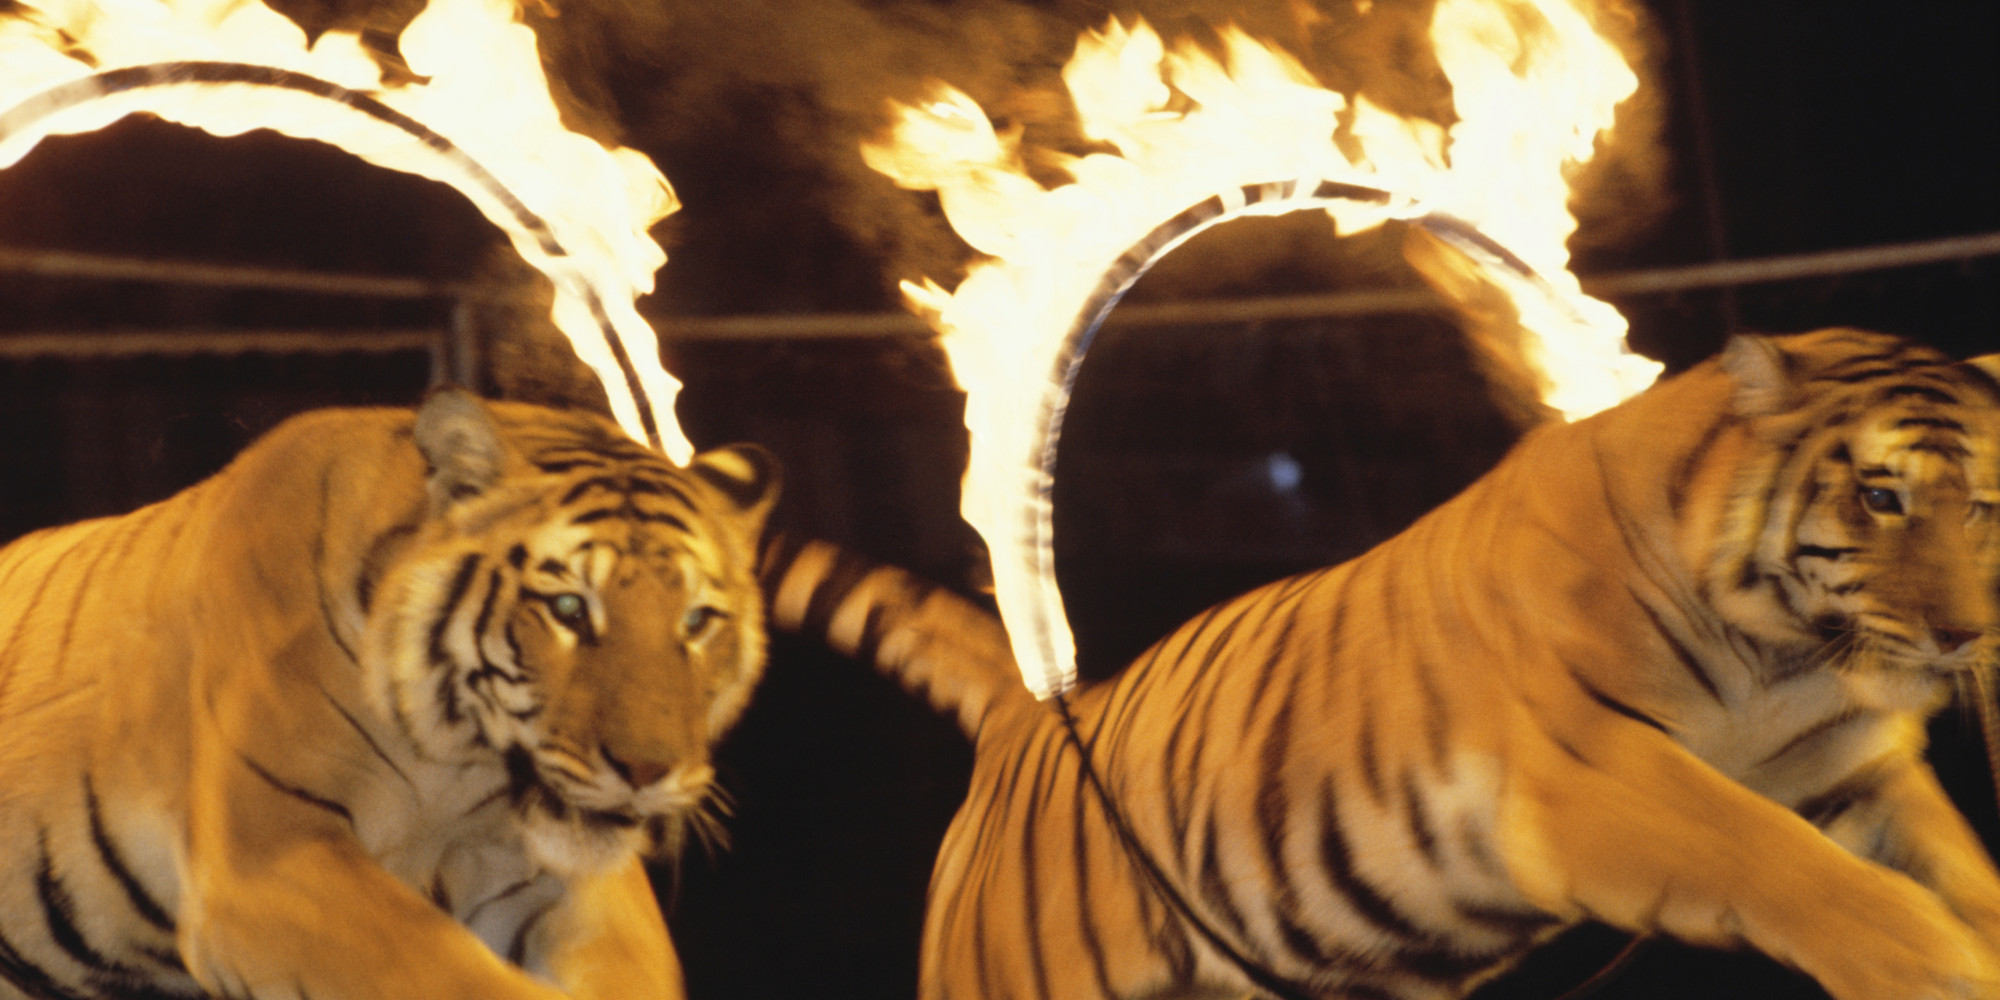 cruelty to animals in circuses essay writer